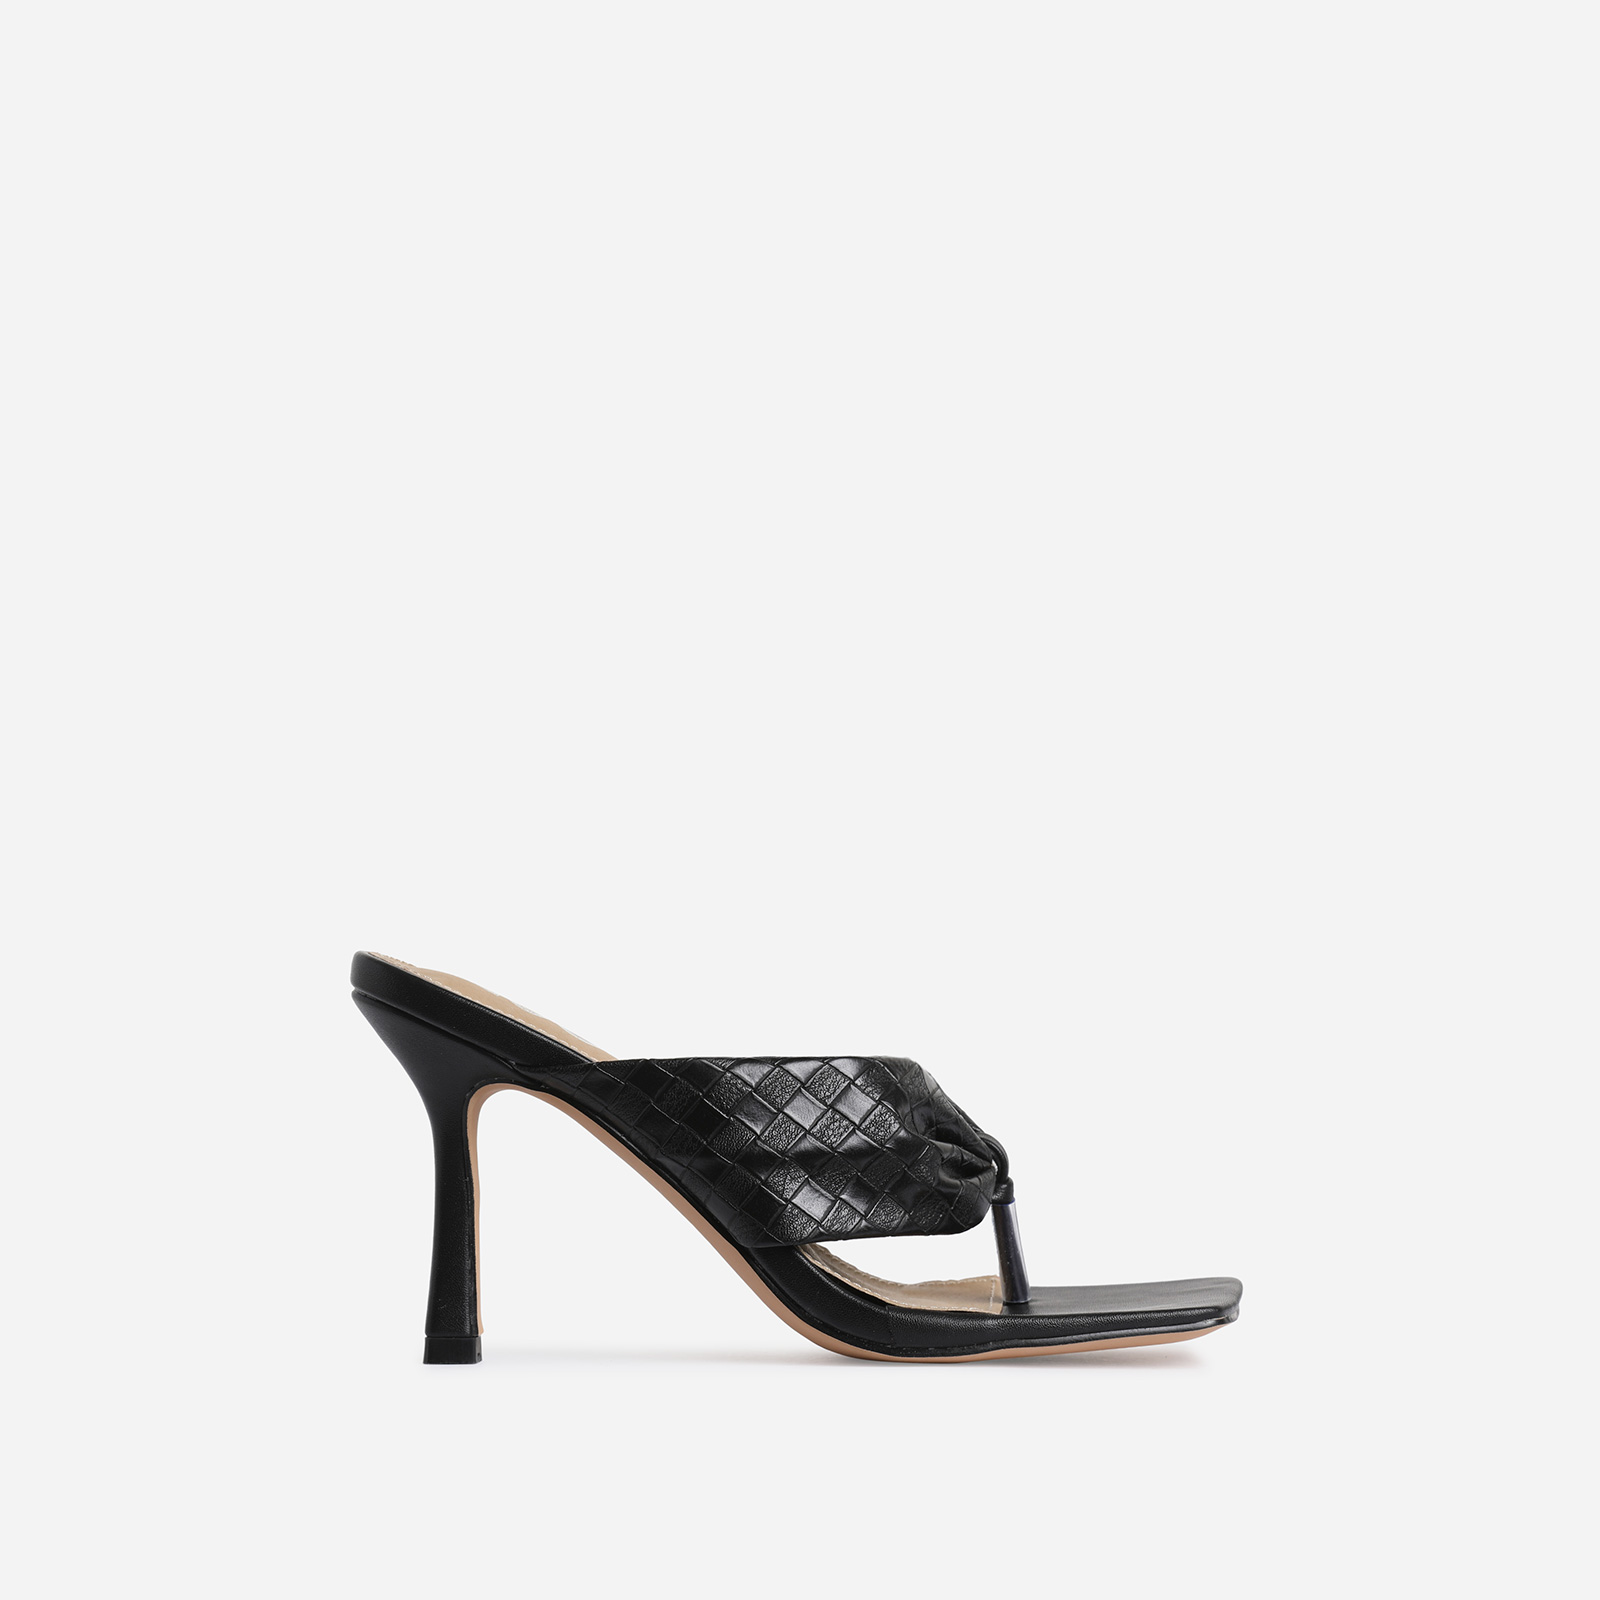 Brave Braided Detail Square Kitten Toe Heel Mule In Black Faux Leather